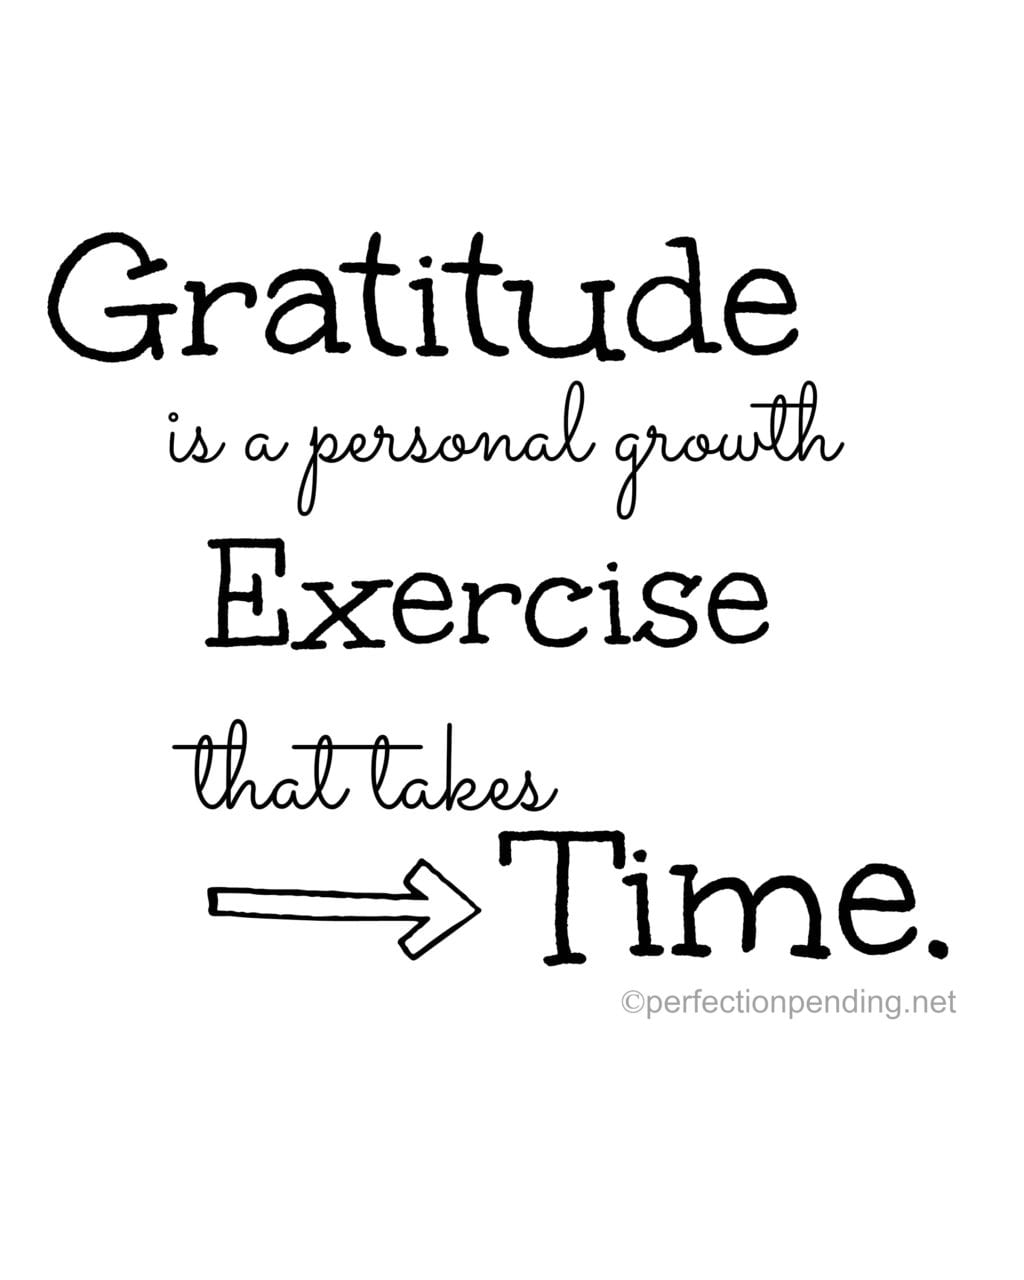 Gratitude is a personal growth exercise that takes time.